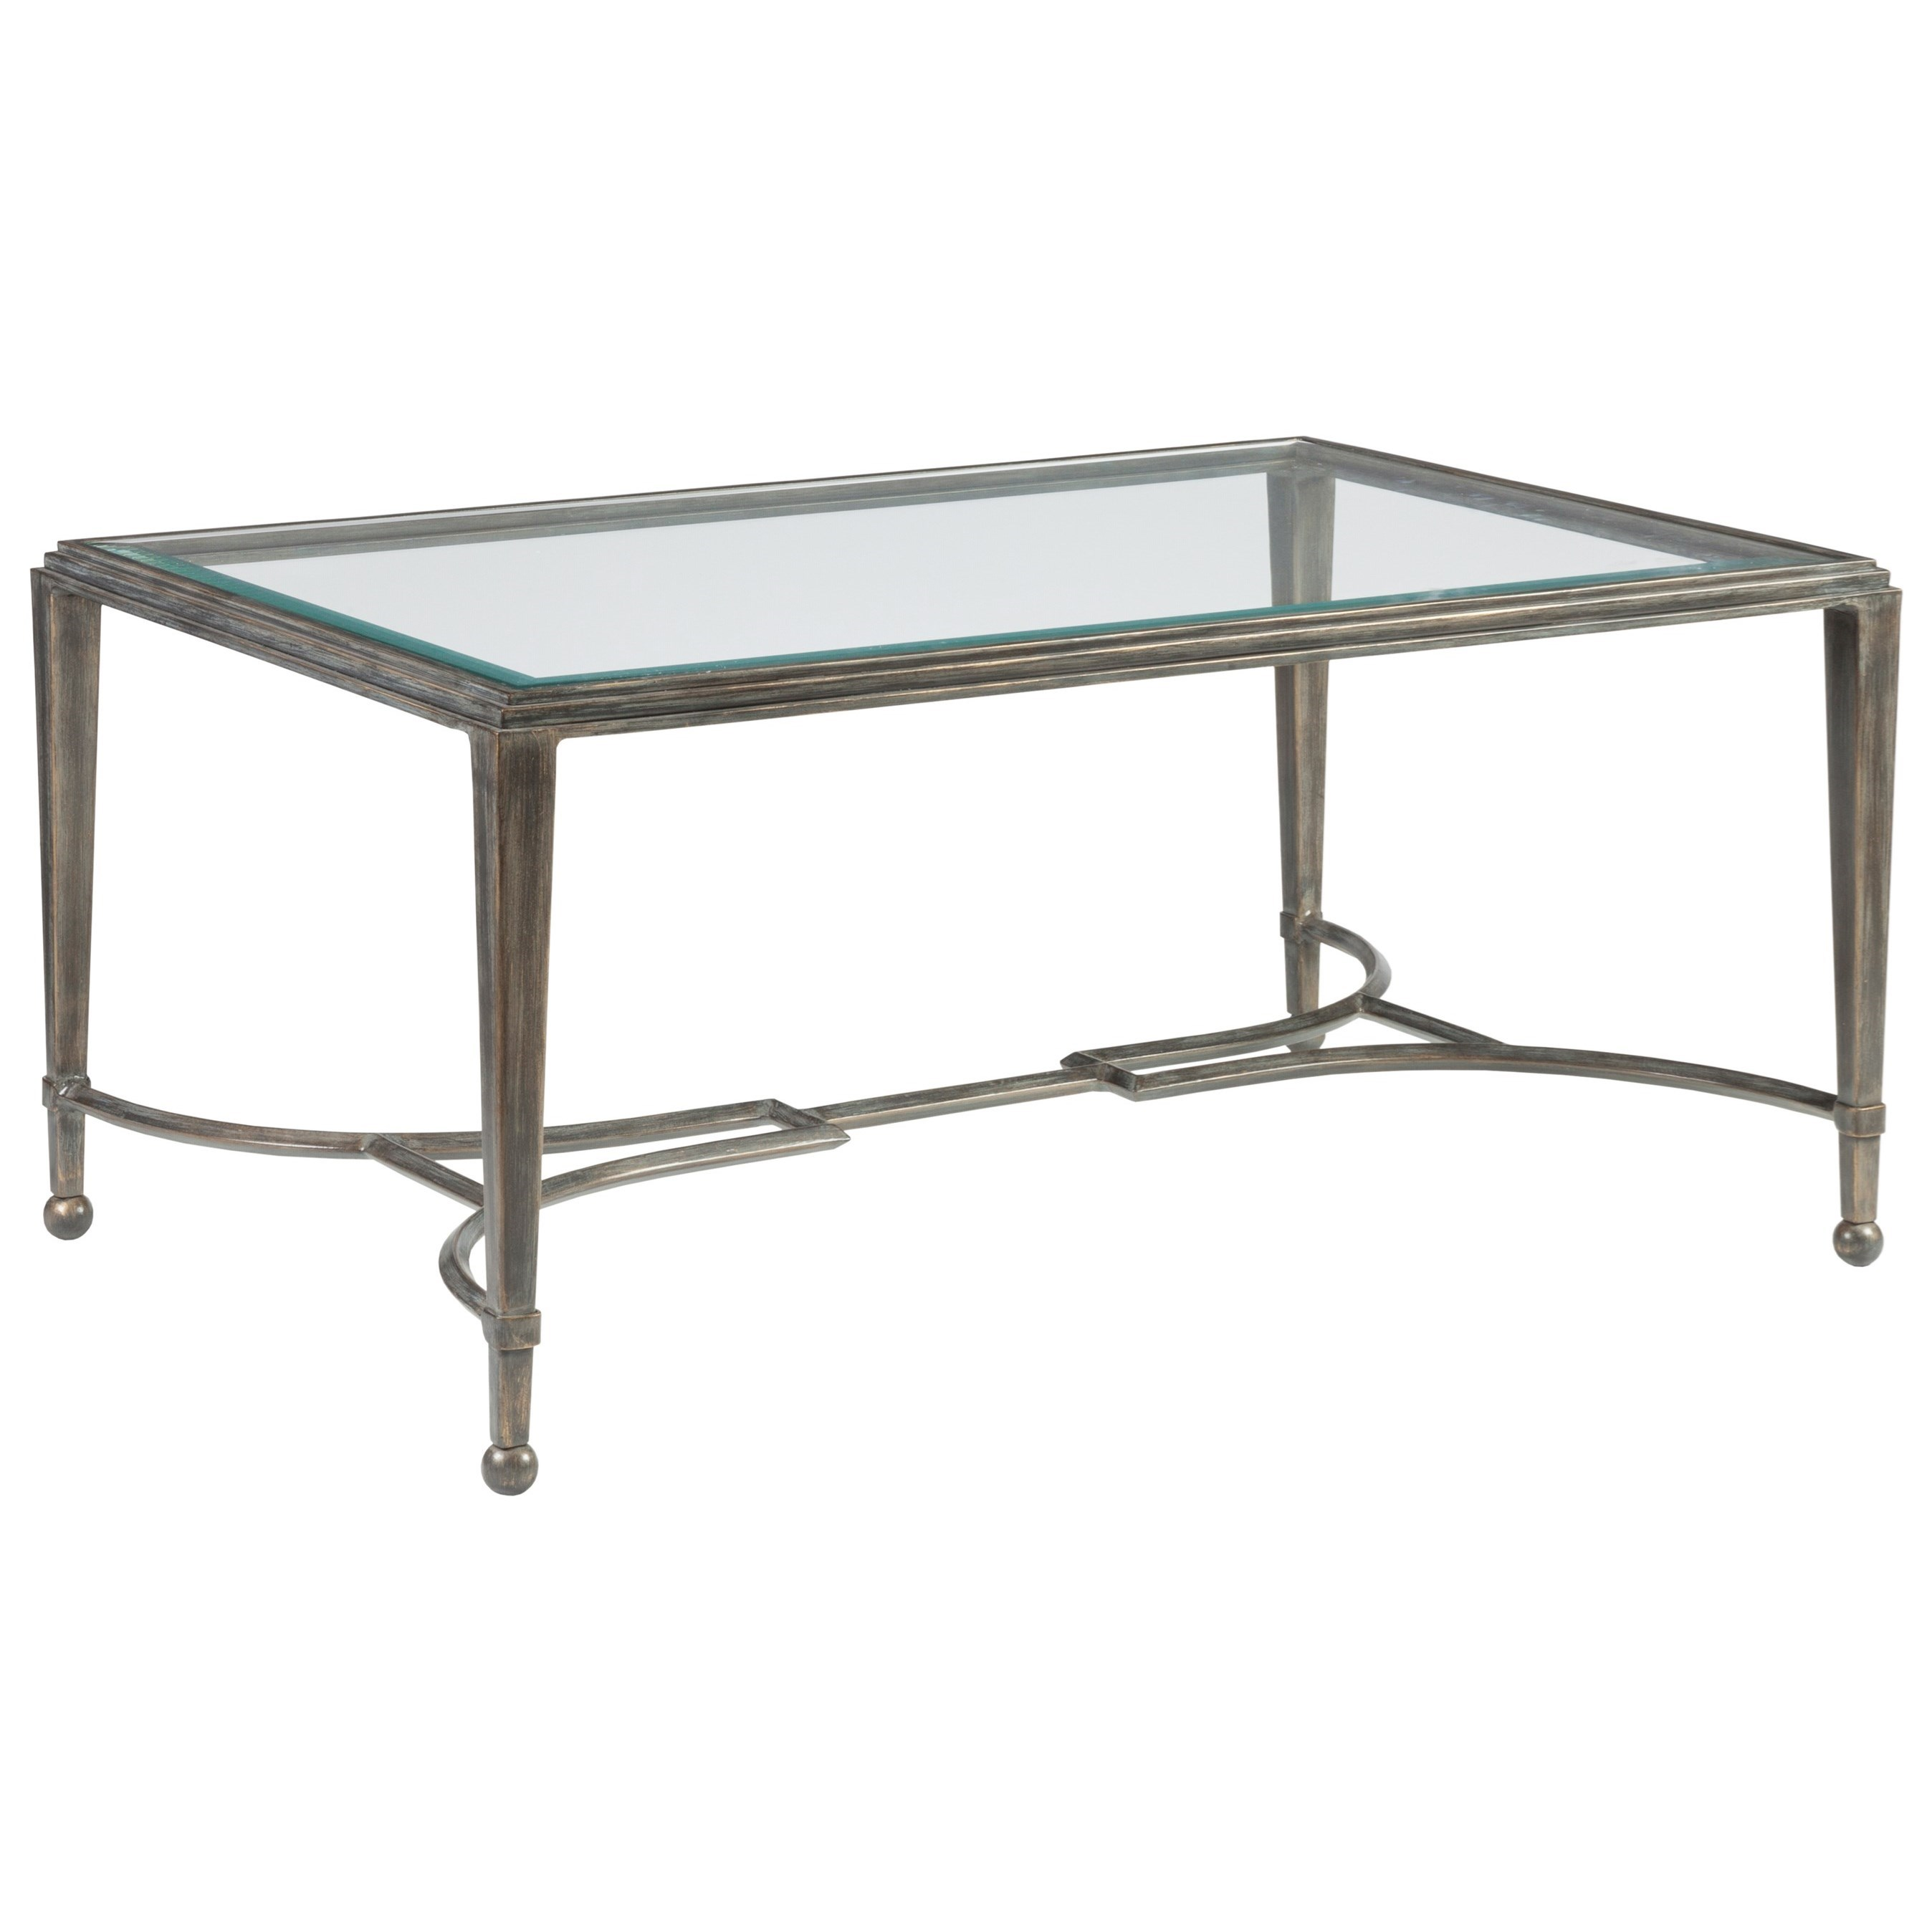 Metal Designs Sangiovese Small Rectangular Cocktail Table by Artistica at Alison Craig Home Furnishings